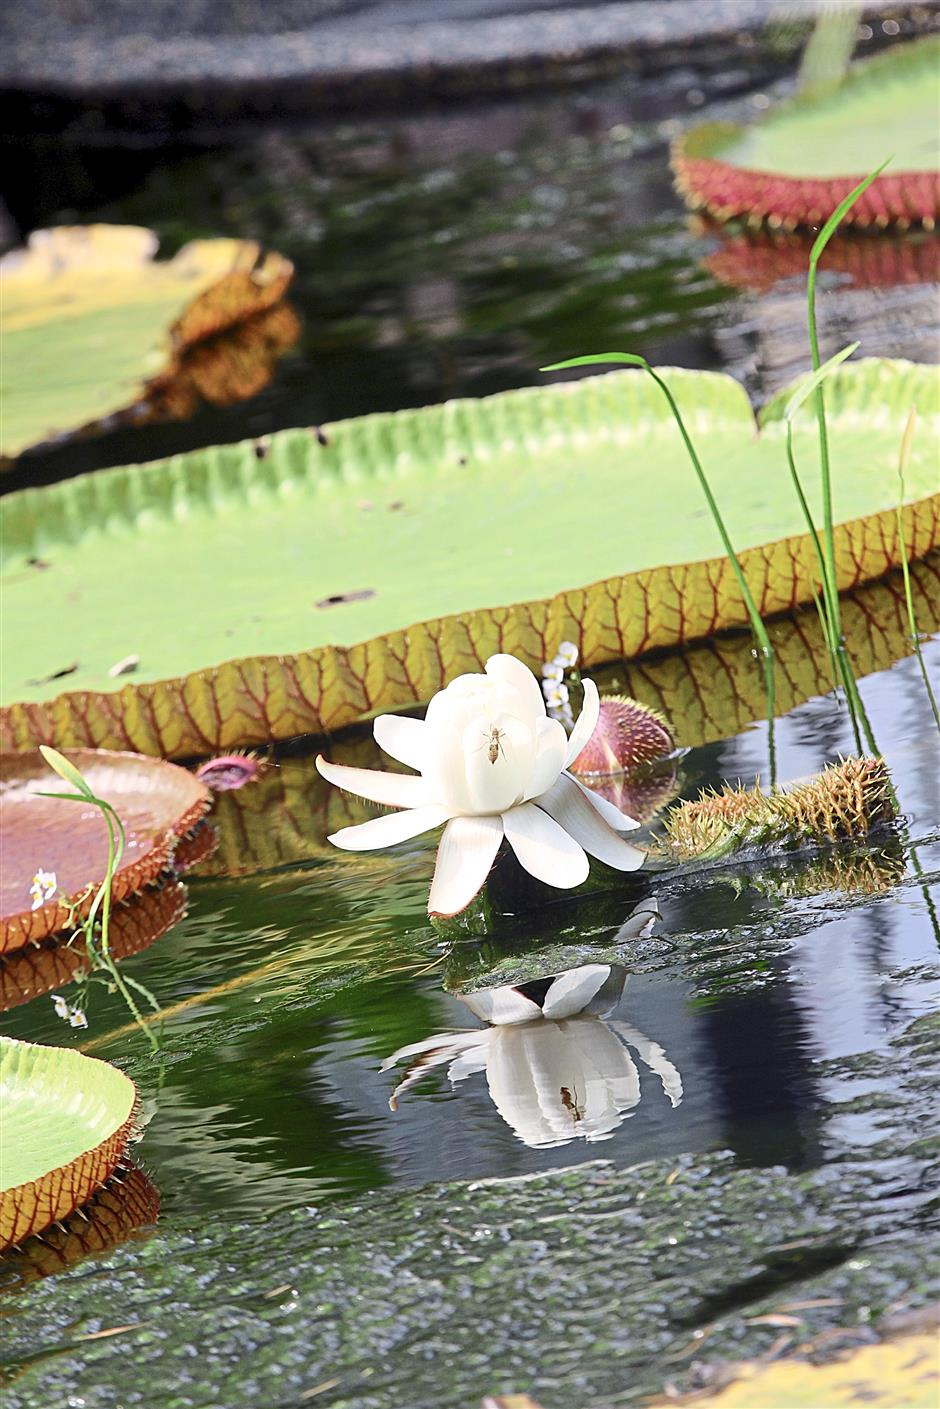 Amazon water lily bowls one over with its size and purity.